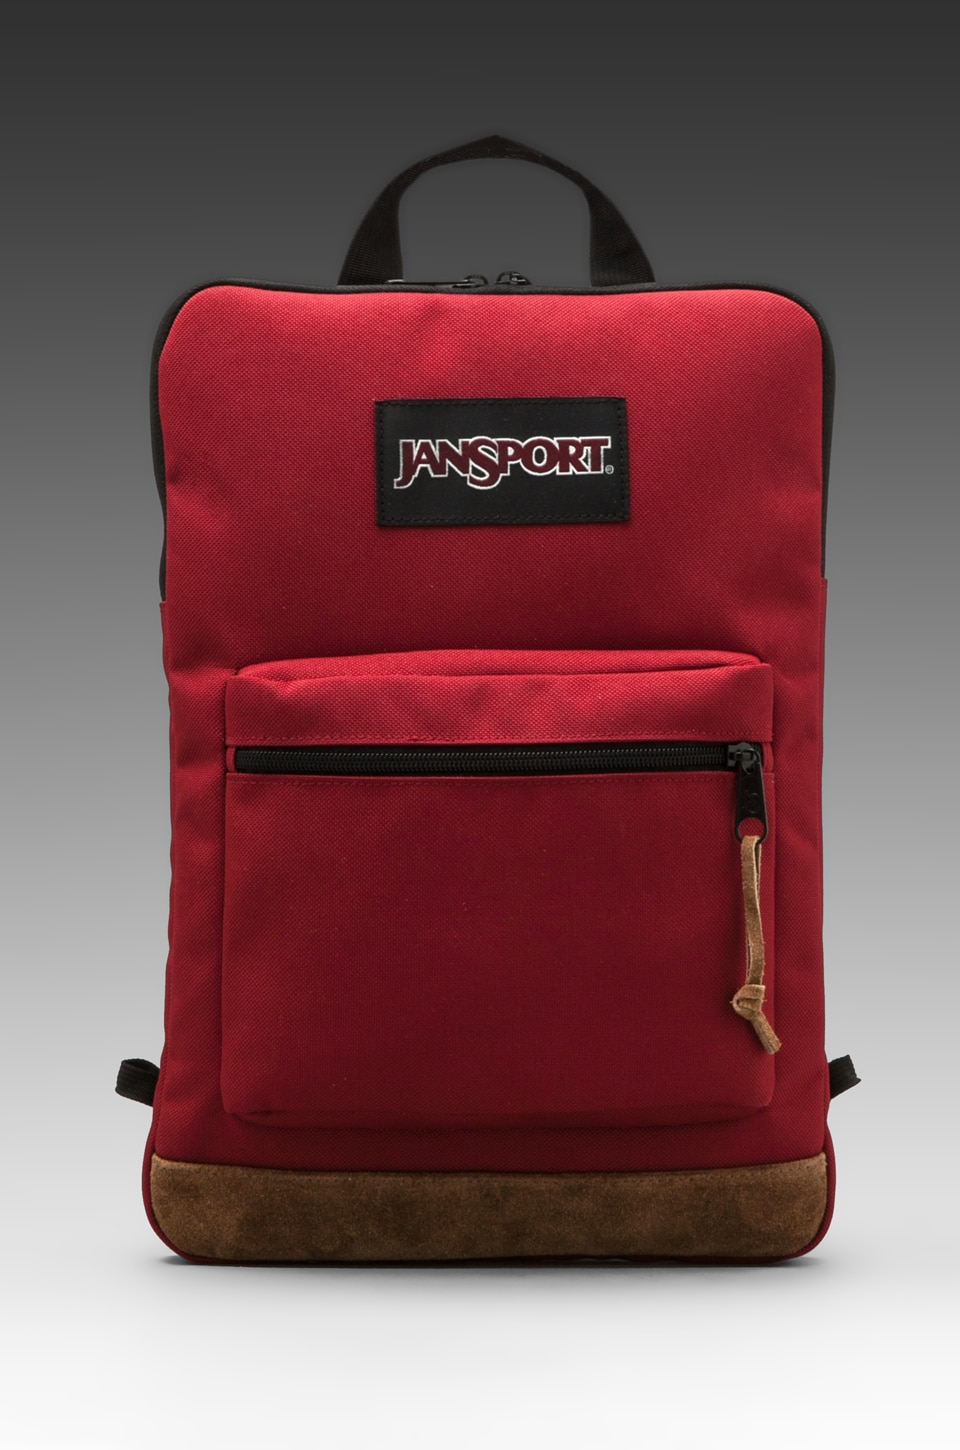 Jansport Right Pack Sleeve in Viking Red